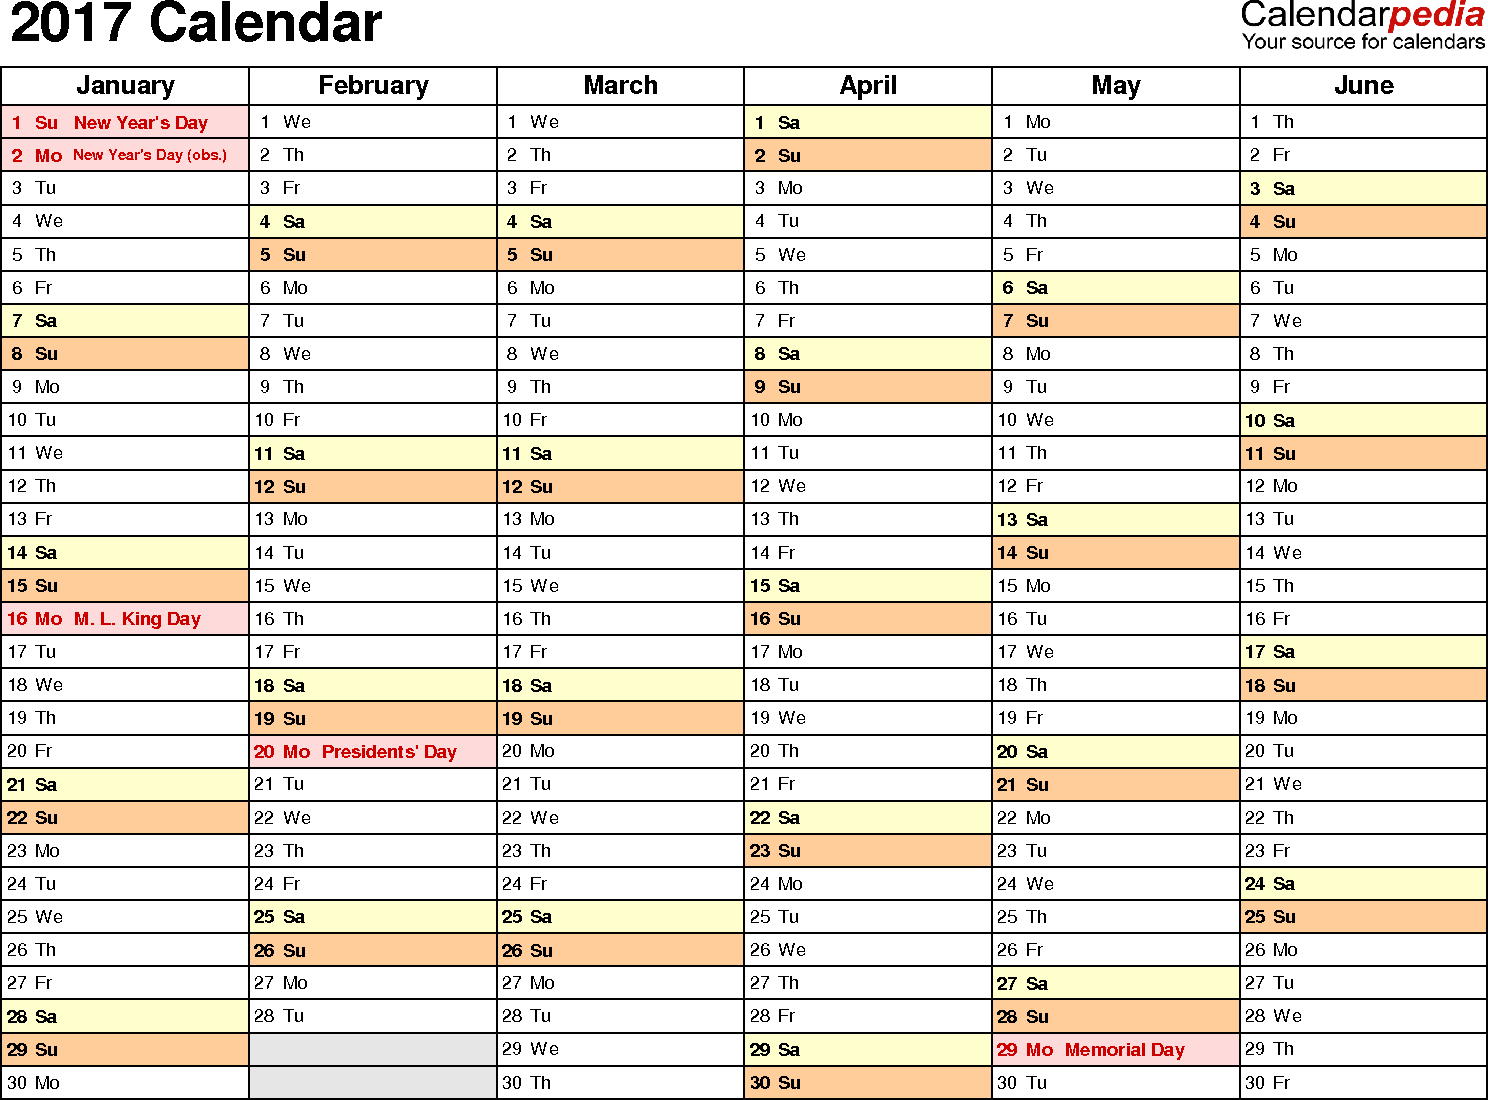 Ediblewildsus  Seductive  Calendar  Download  Free Printable Excel Templates Xls With Lovely Template   Calendar For Excel Months Horizontally  Pages Landscape Orientation With Easy On The Eye Using Excel To Track Projects Also Number Formatting Excel In Addition Pixel Art Excel And Excel Macro On Open As Well As Insert Column Shortcut Excel Additionally Sports Excel From Calendarpediacom With Ediblewildsus  Lovely  Calendar  Download  Free Printable Excel Templates Xls With Easy On The Eye Template   Calendar For Excel Months Horizontally  Pages Landscape Orientation And Seductive Using Excel To Track Projects Also Number Formatting Excel In Addition Pixel Art Excel From Calendarpediacom